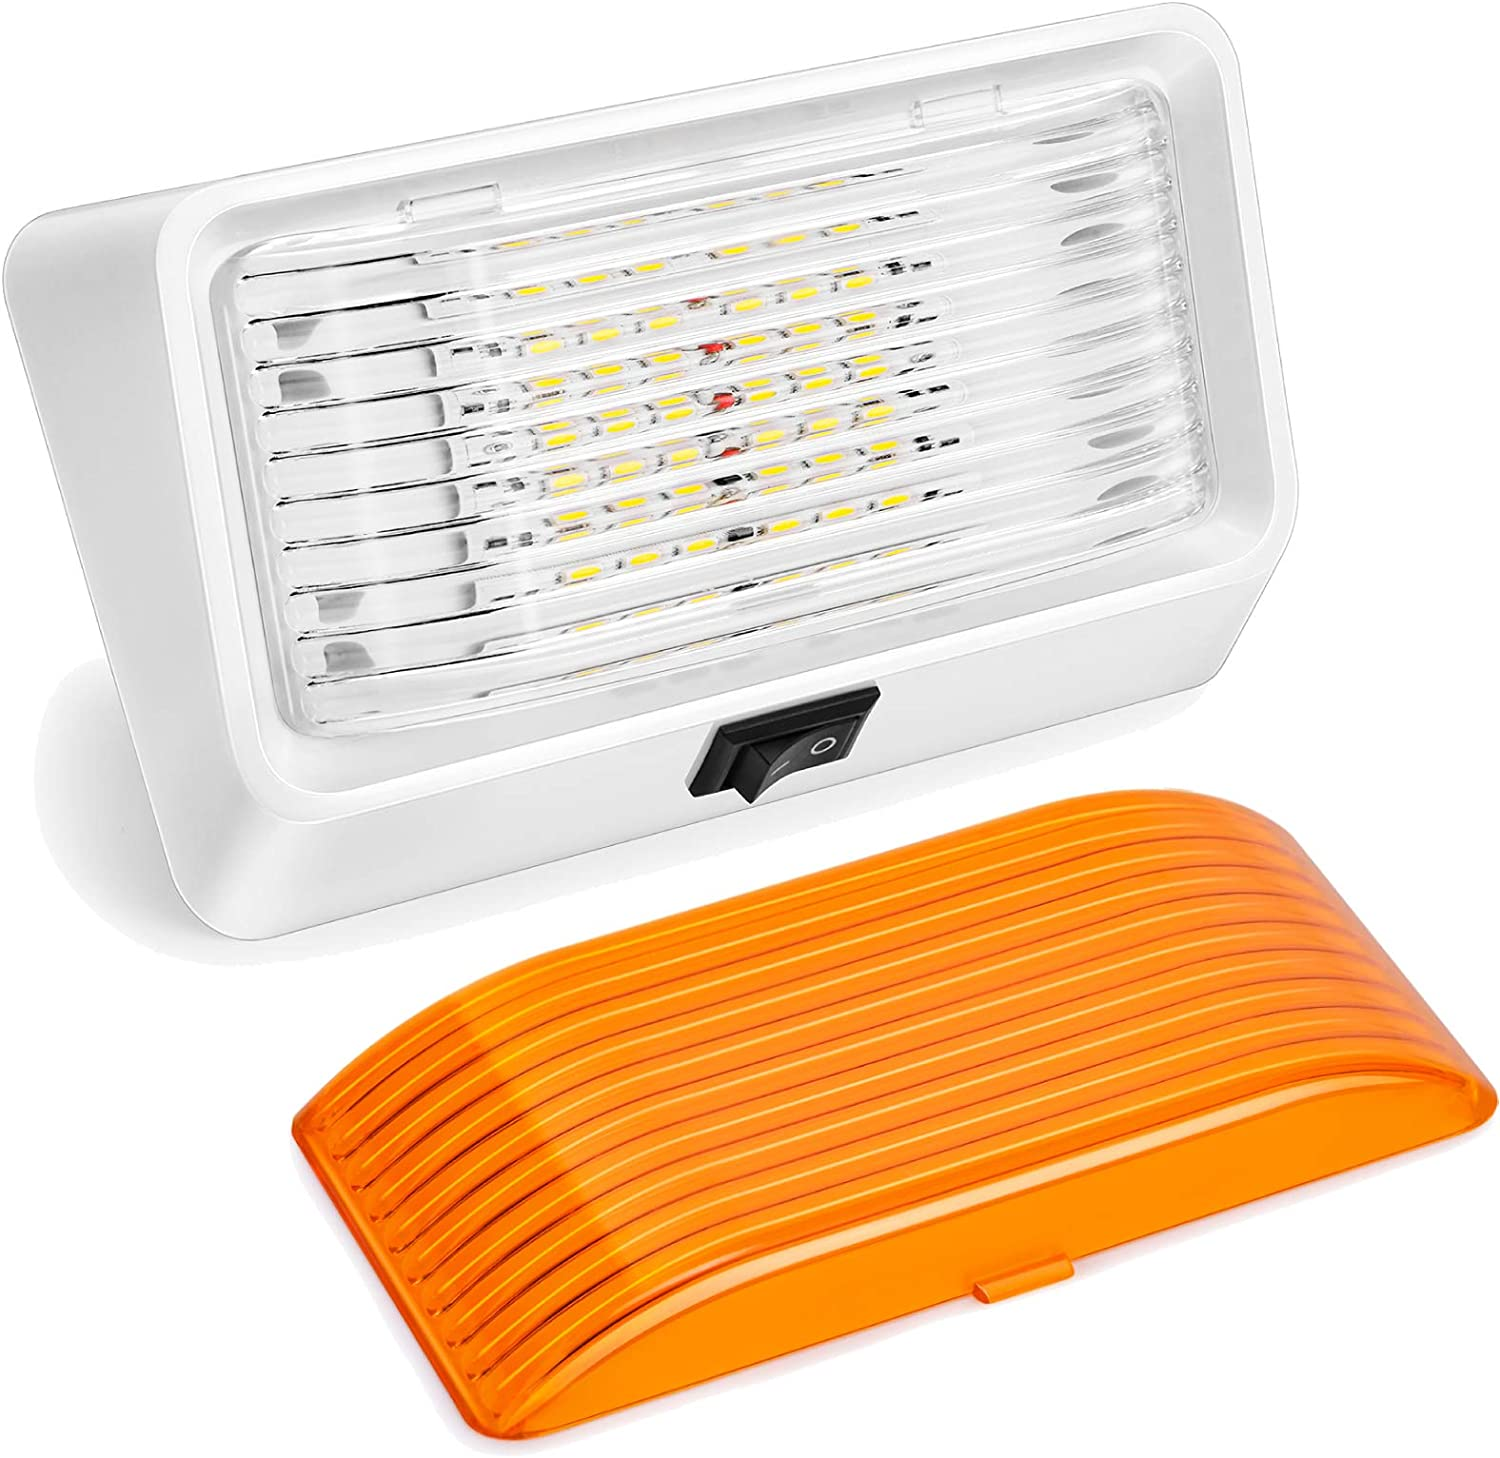 LED RV Now free shipping Exterior Porch Utility Max 60% OFF Light with 12V Switch-Kohree Repla